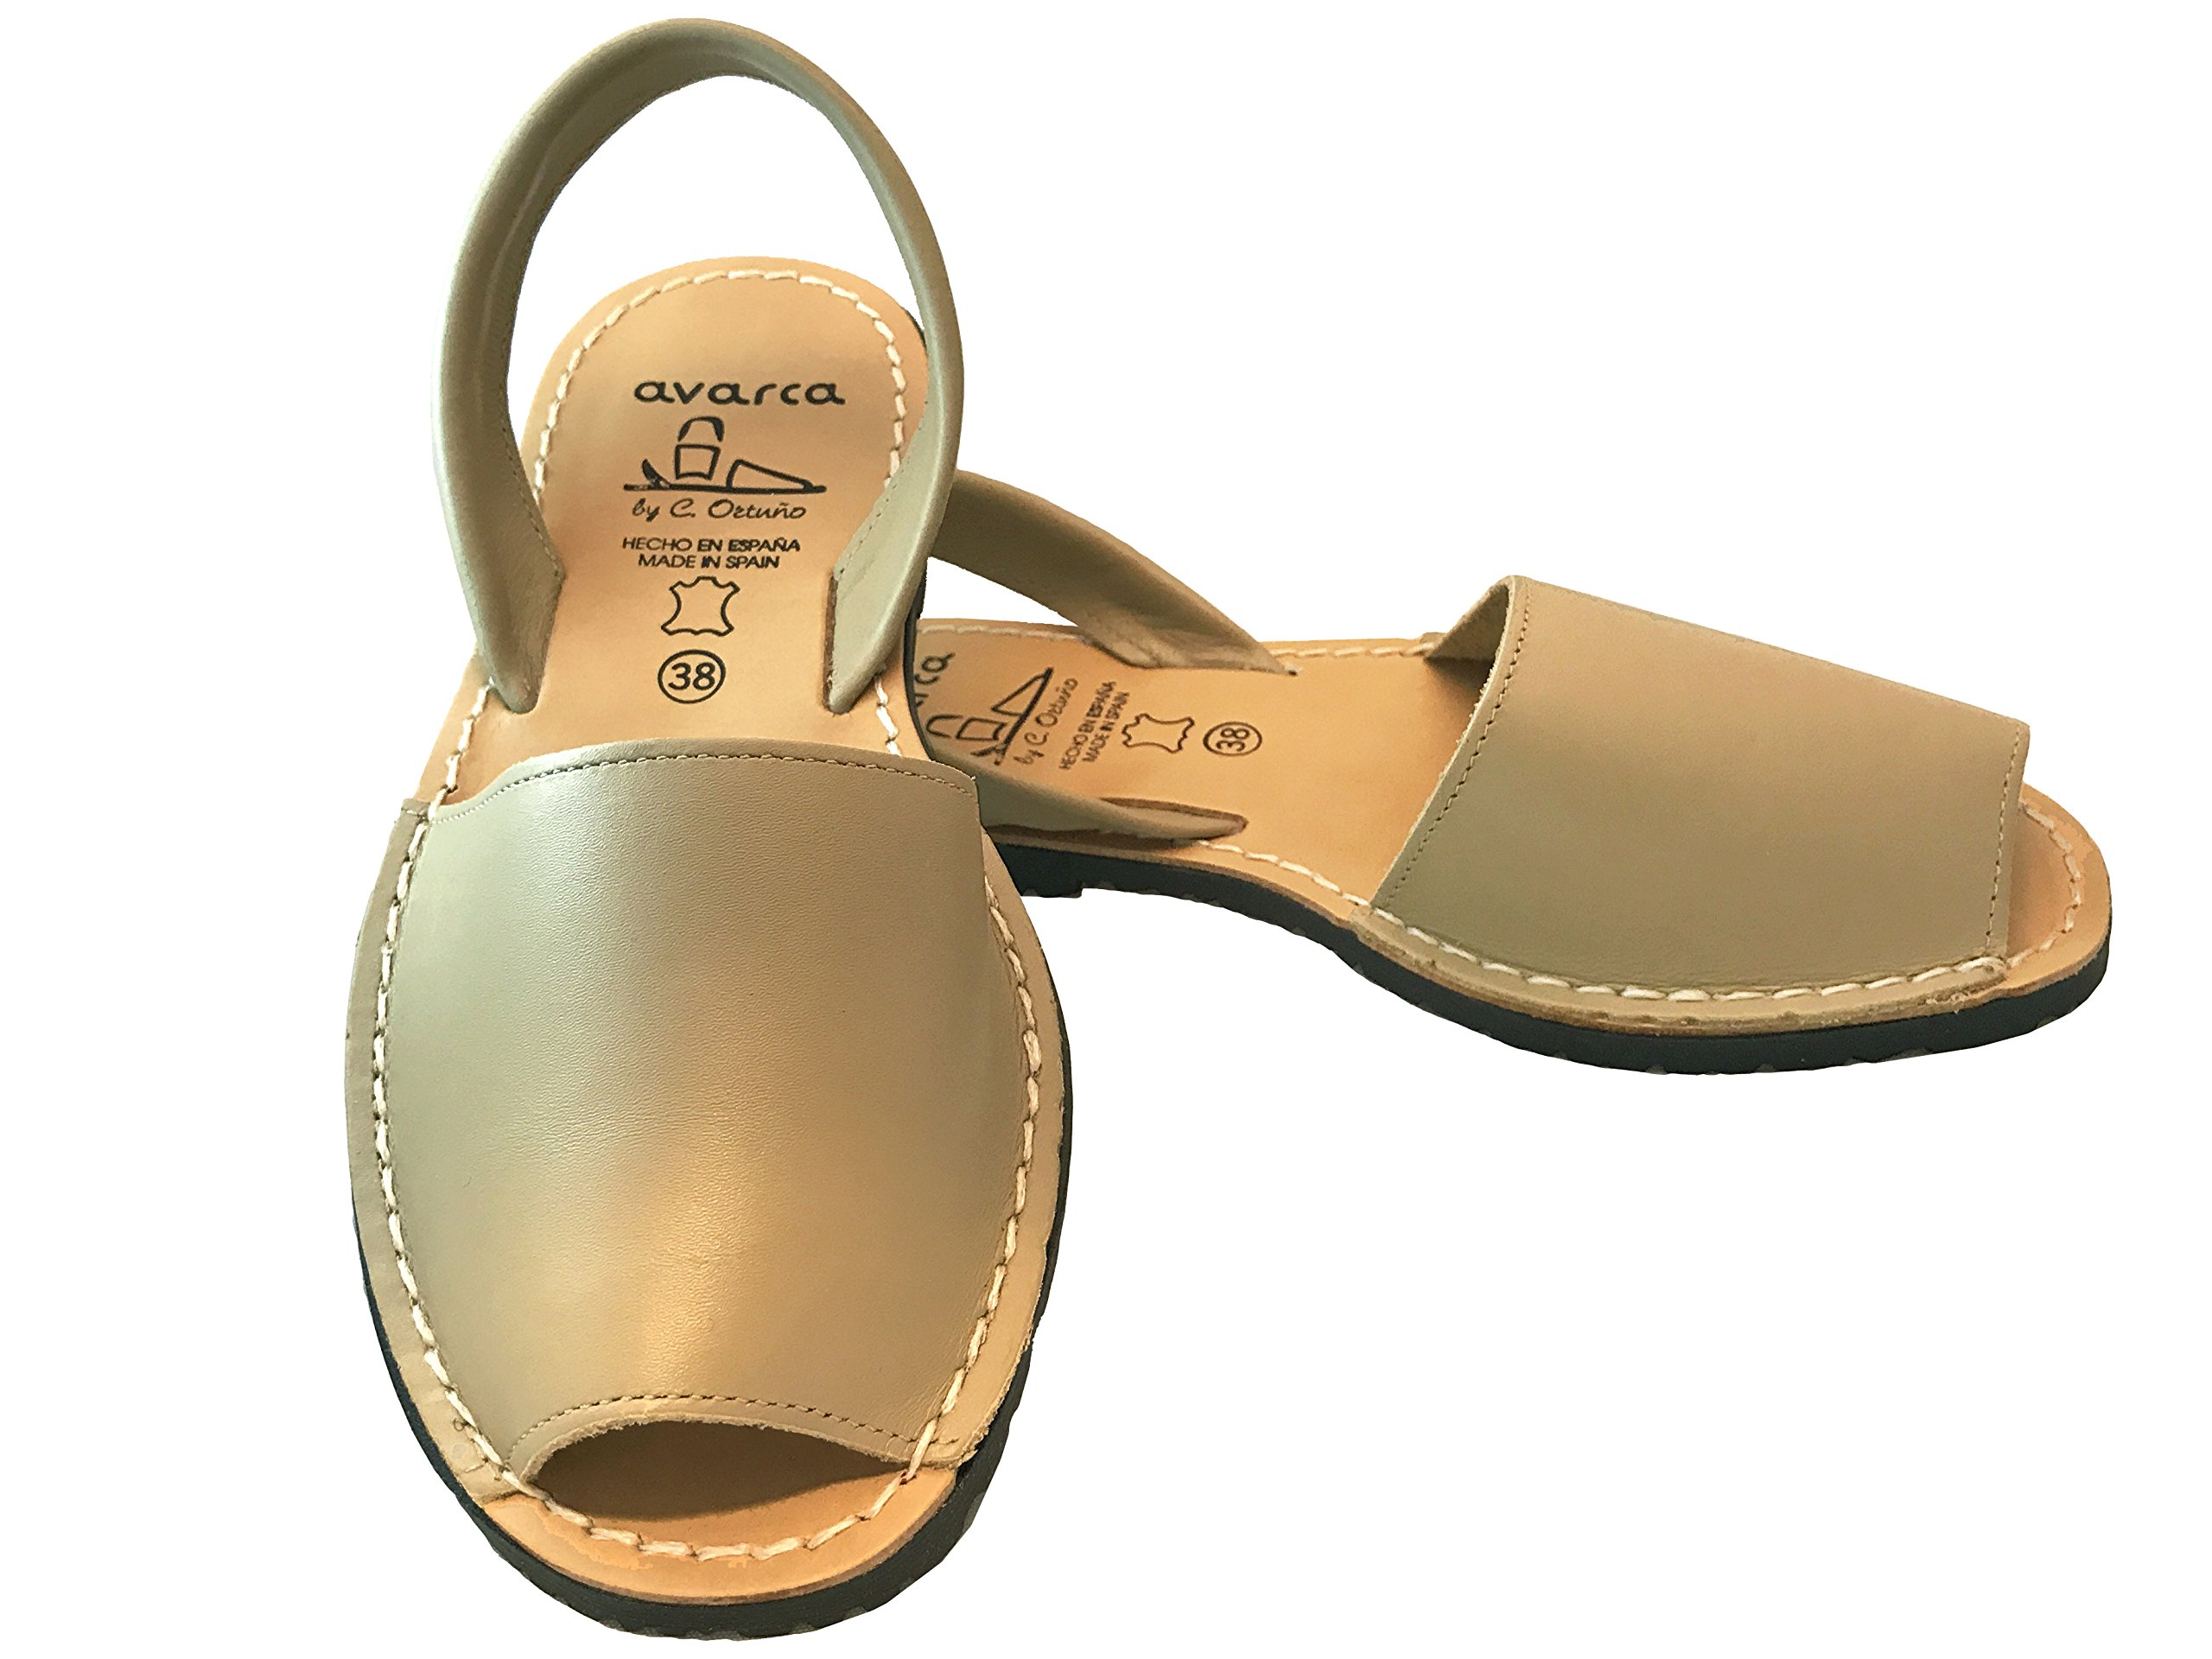 Avarcas Sandals for Women - Handmade in Spain with Natural Leather (Size 8 Beige)